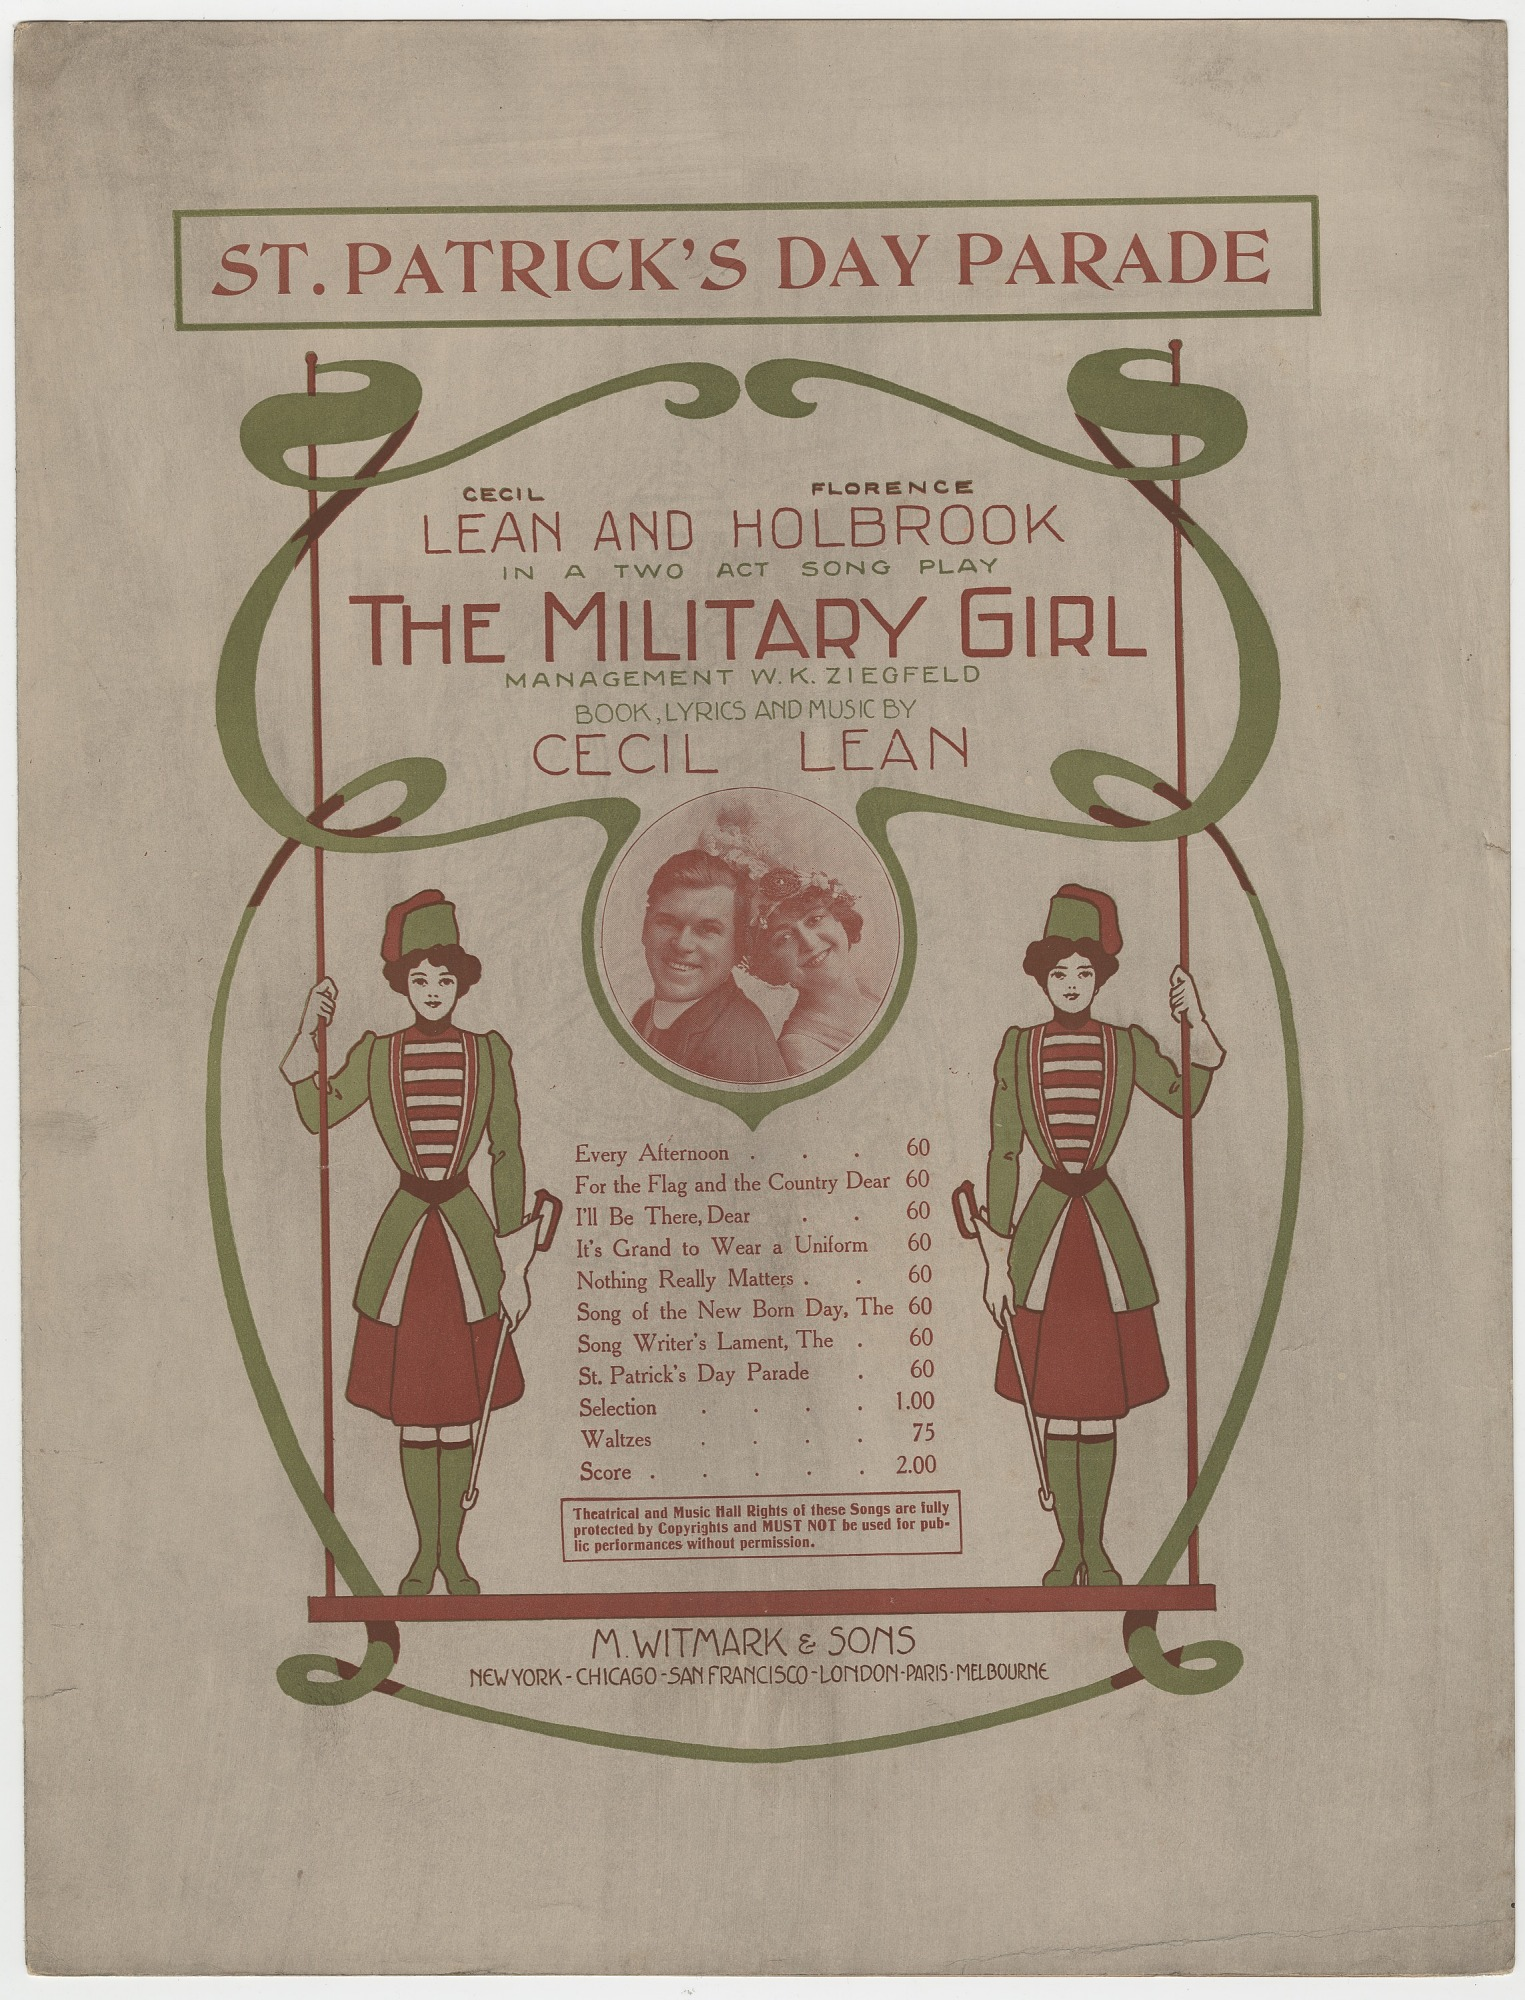 images for St. Patrick's Day Parade sheet music